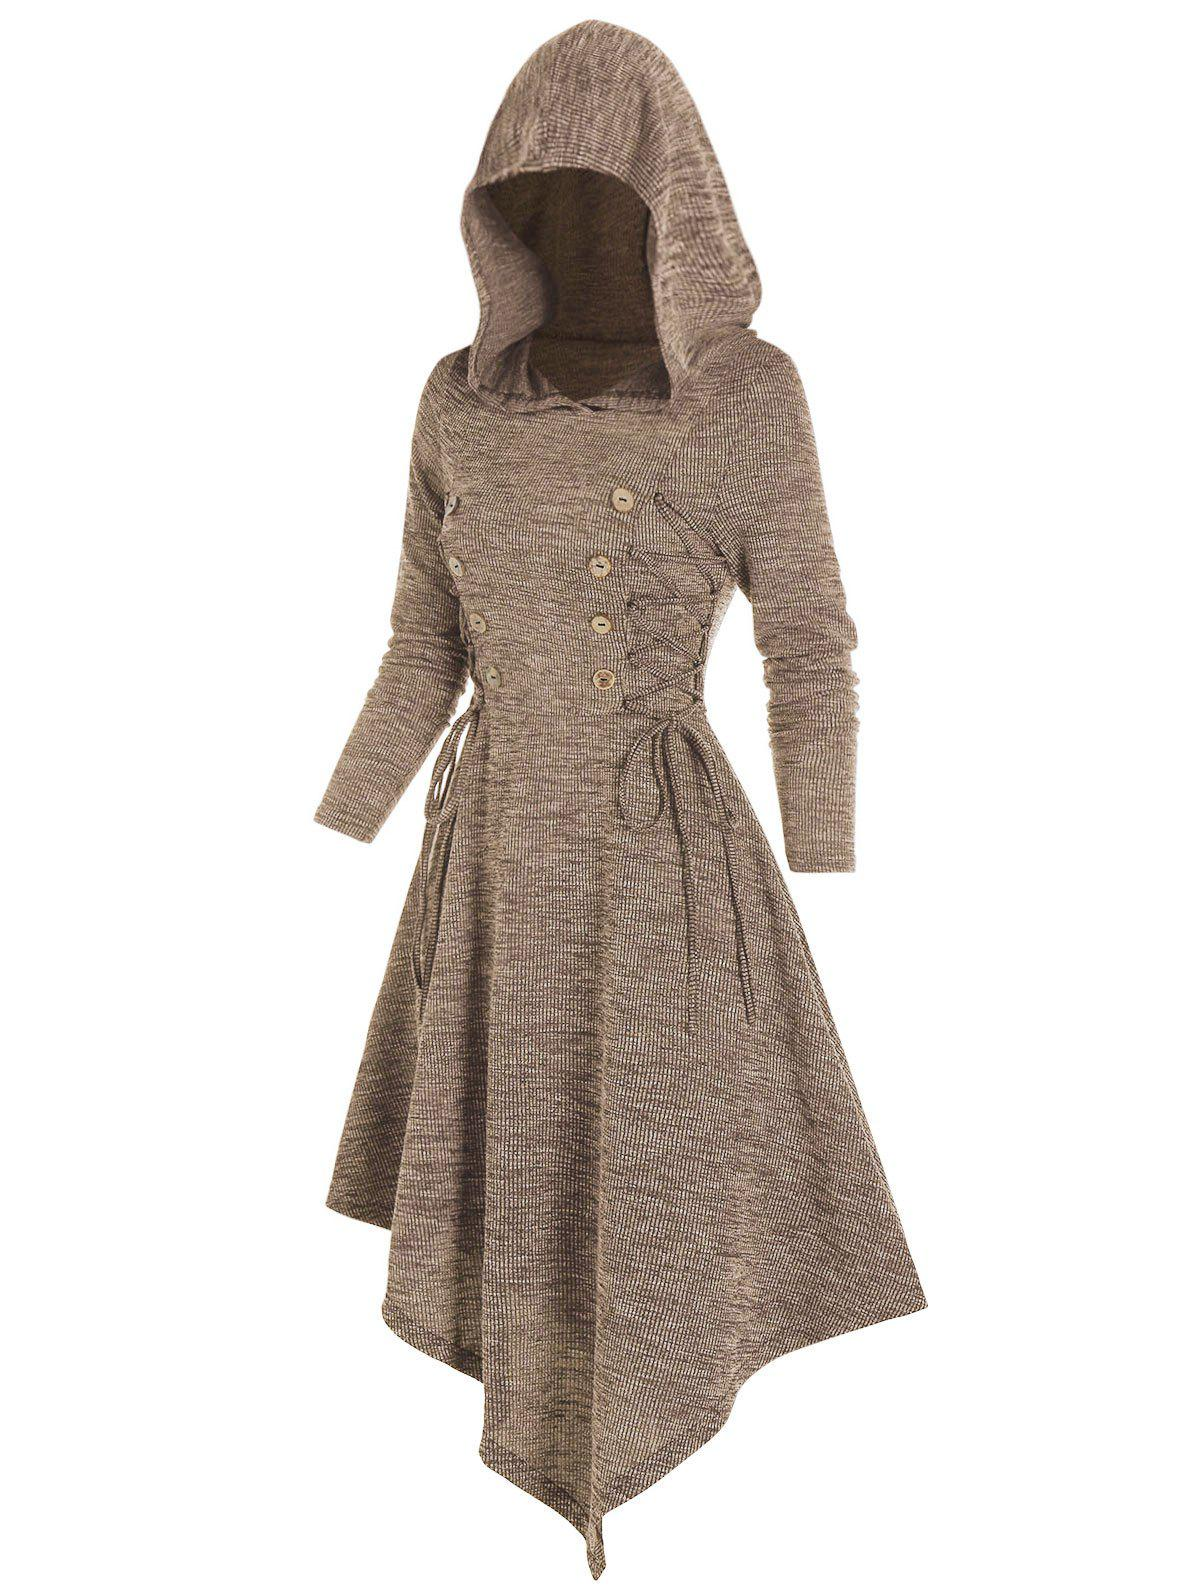 Lace Up Hooded Asymmetrical Knitted Dress - COFFEE 3XL